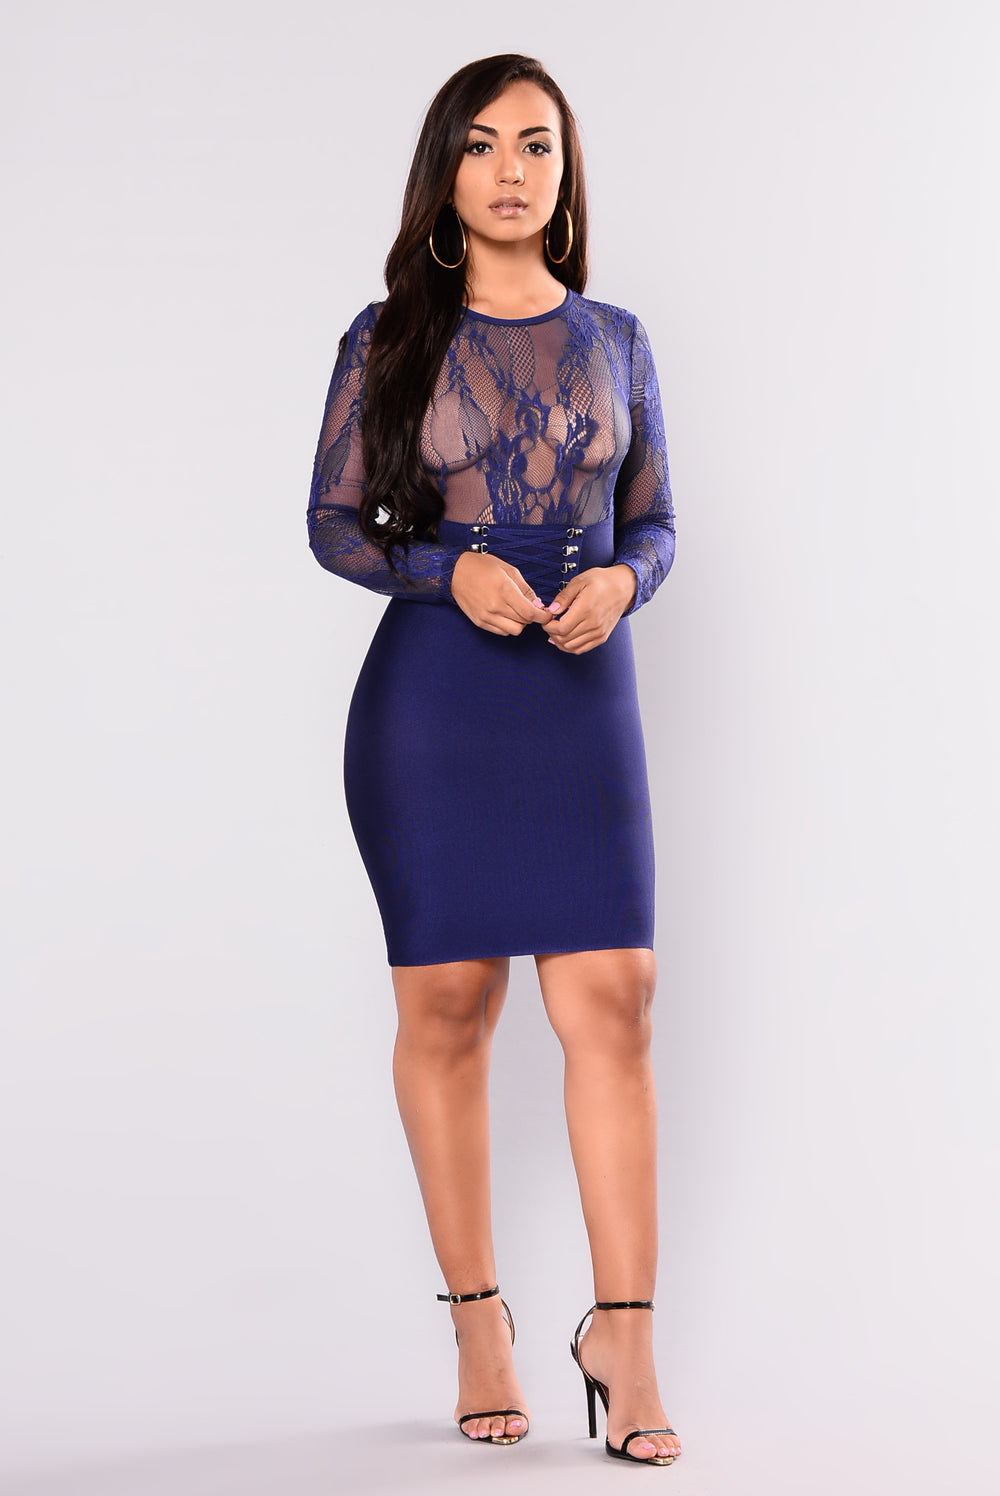 Leave A Trace Bandage Dress - Navy